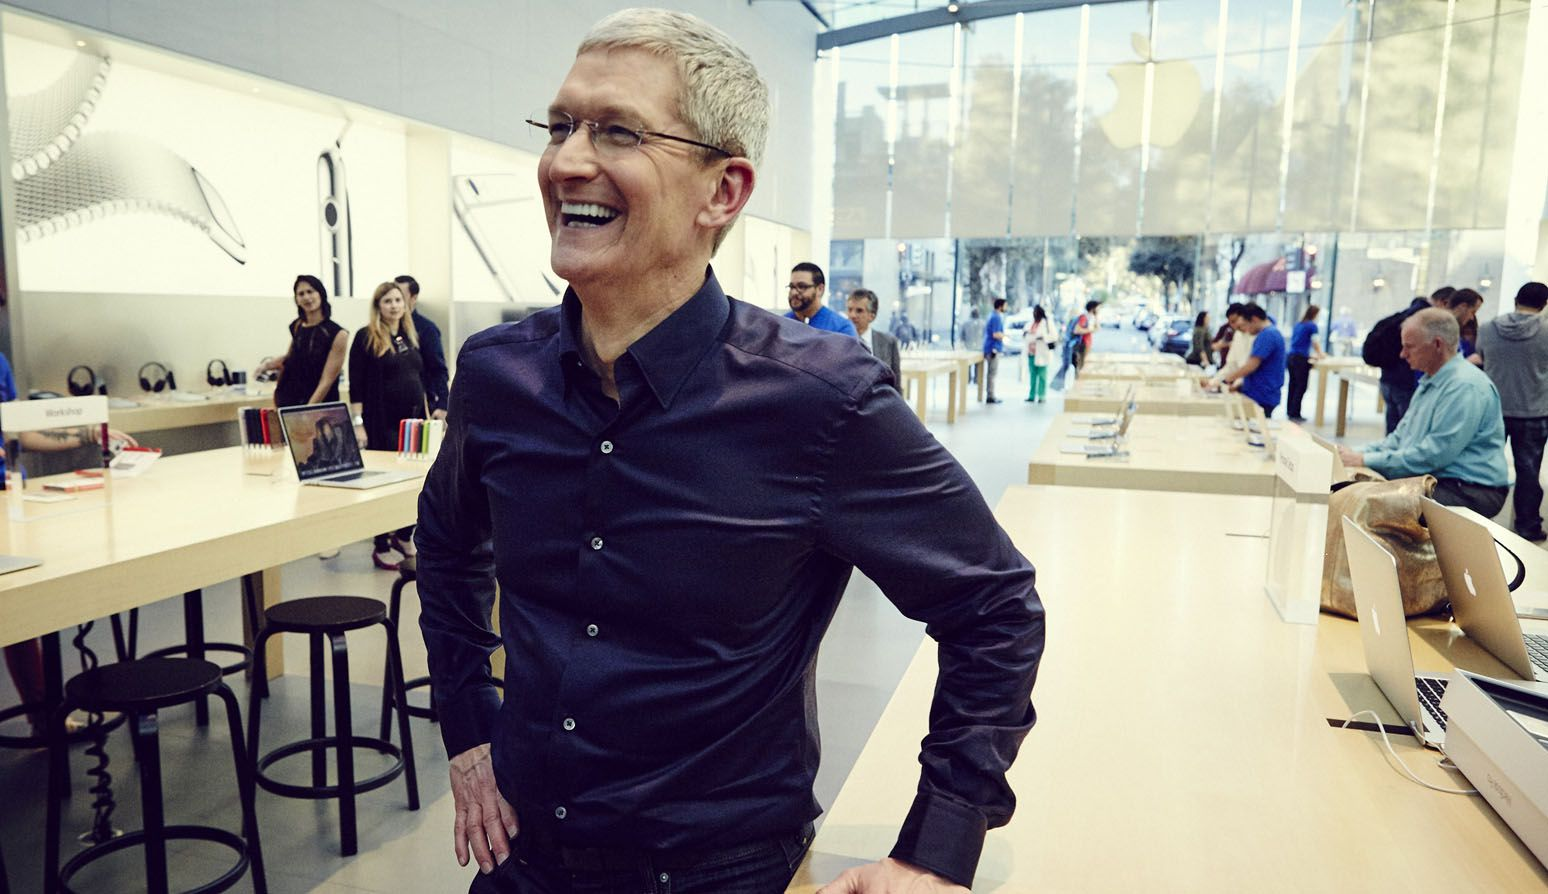 Apple Inc CEO Tim Cook at one of their Apple Labs in California, United States. Image Credit: FortuneDotCom